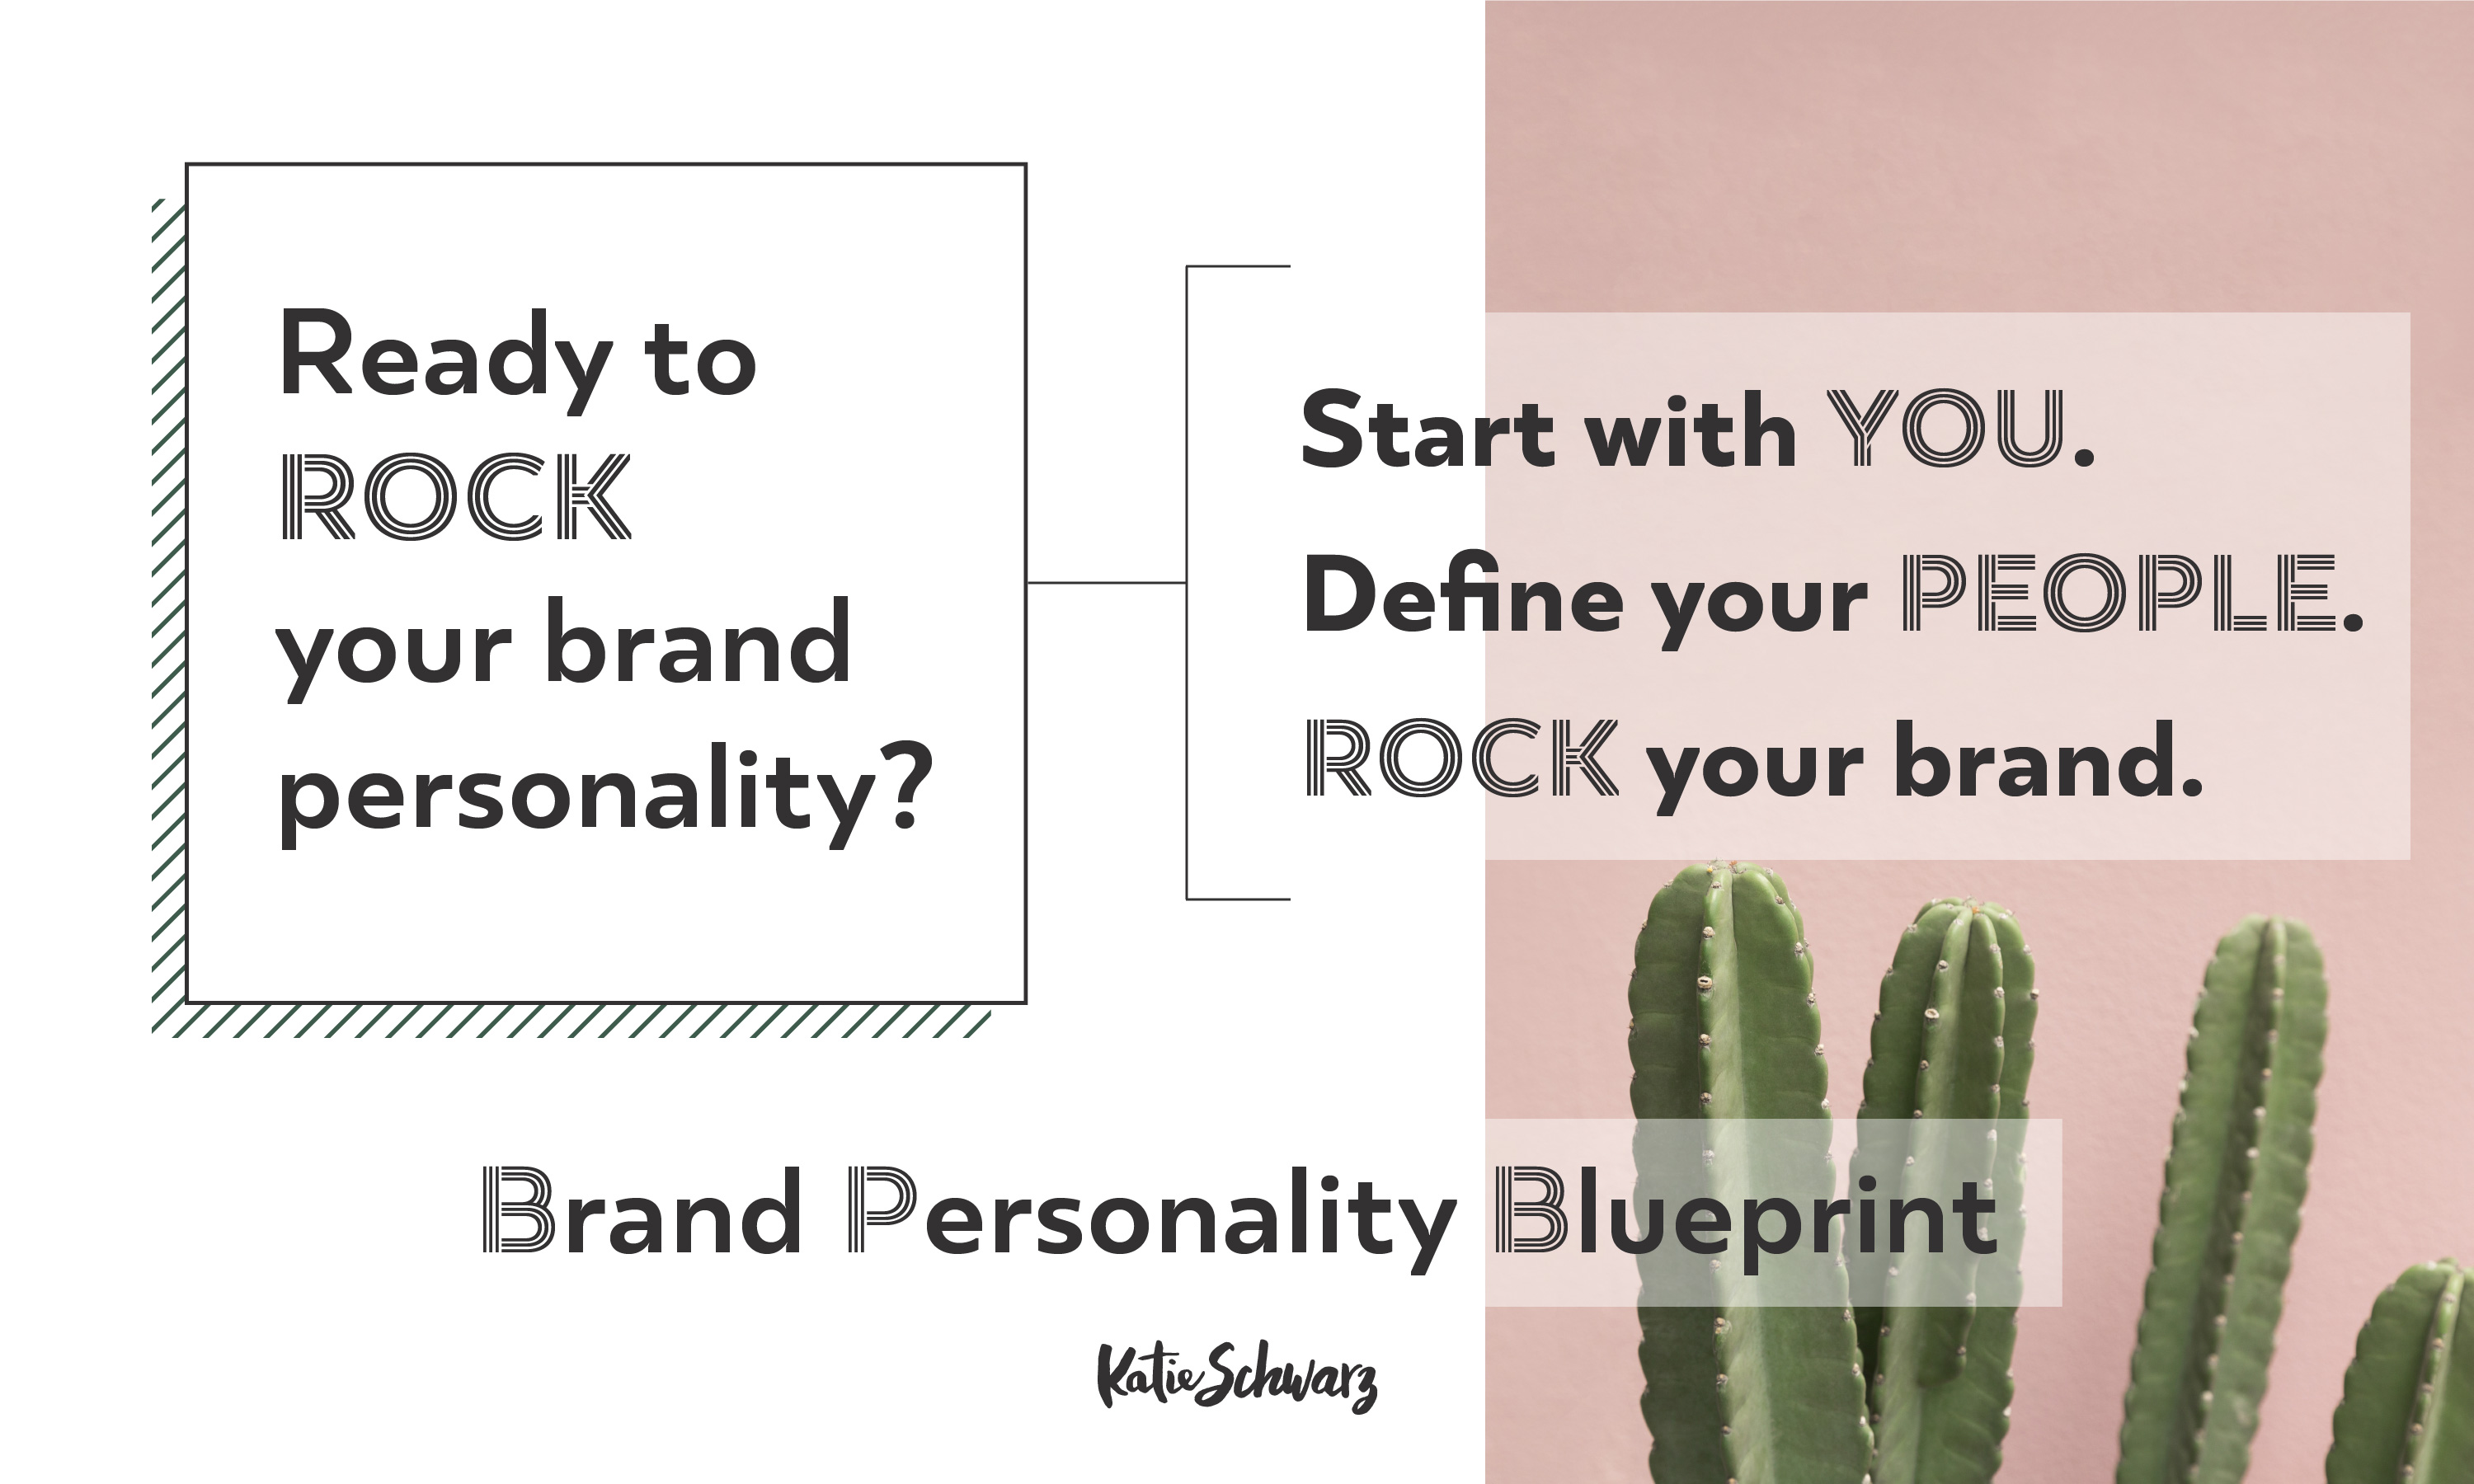 Ready to rock your brand personality? Start with you, define your people, rock your brand.